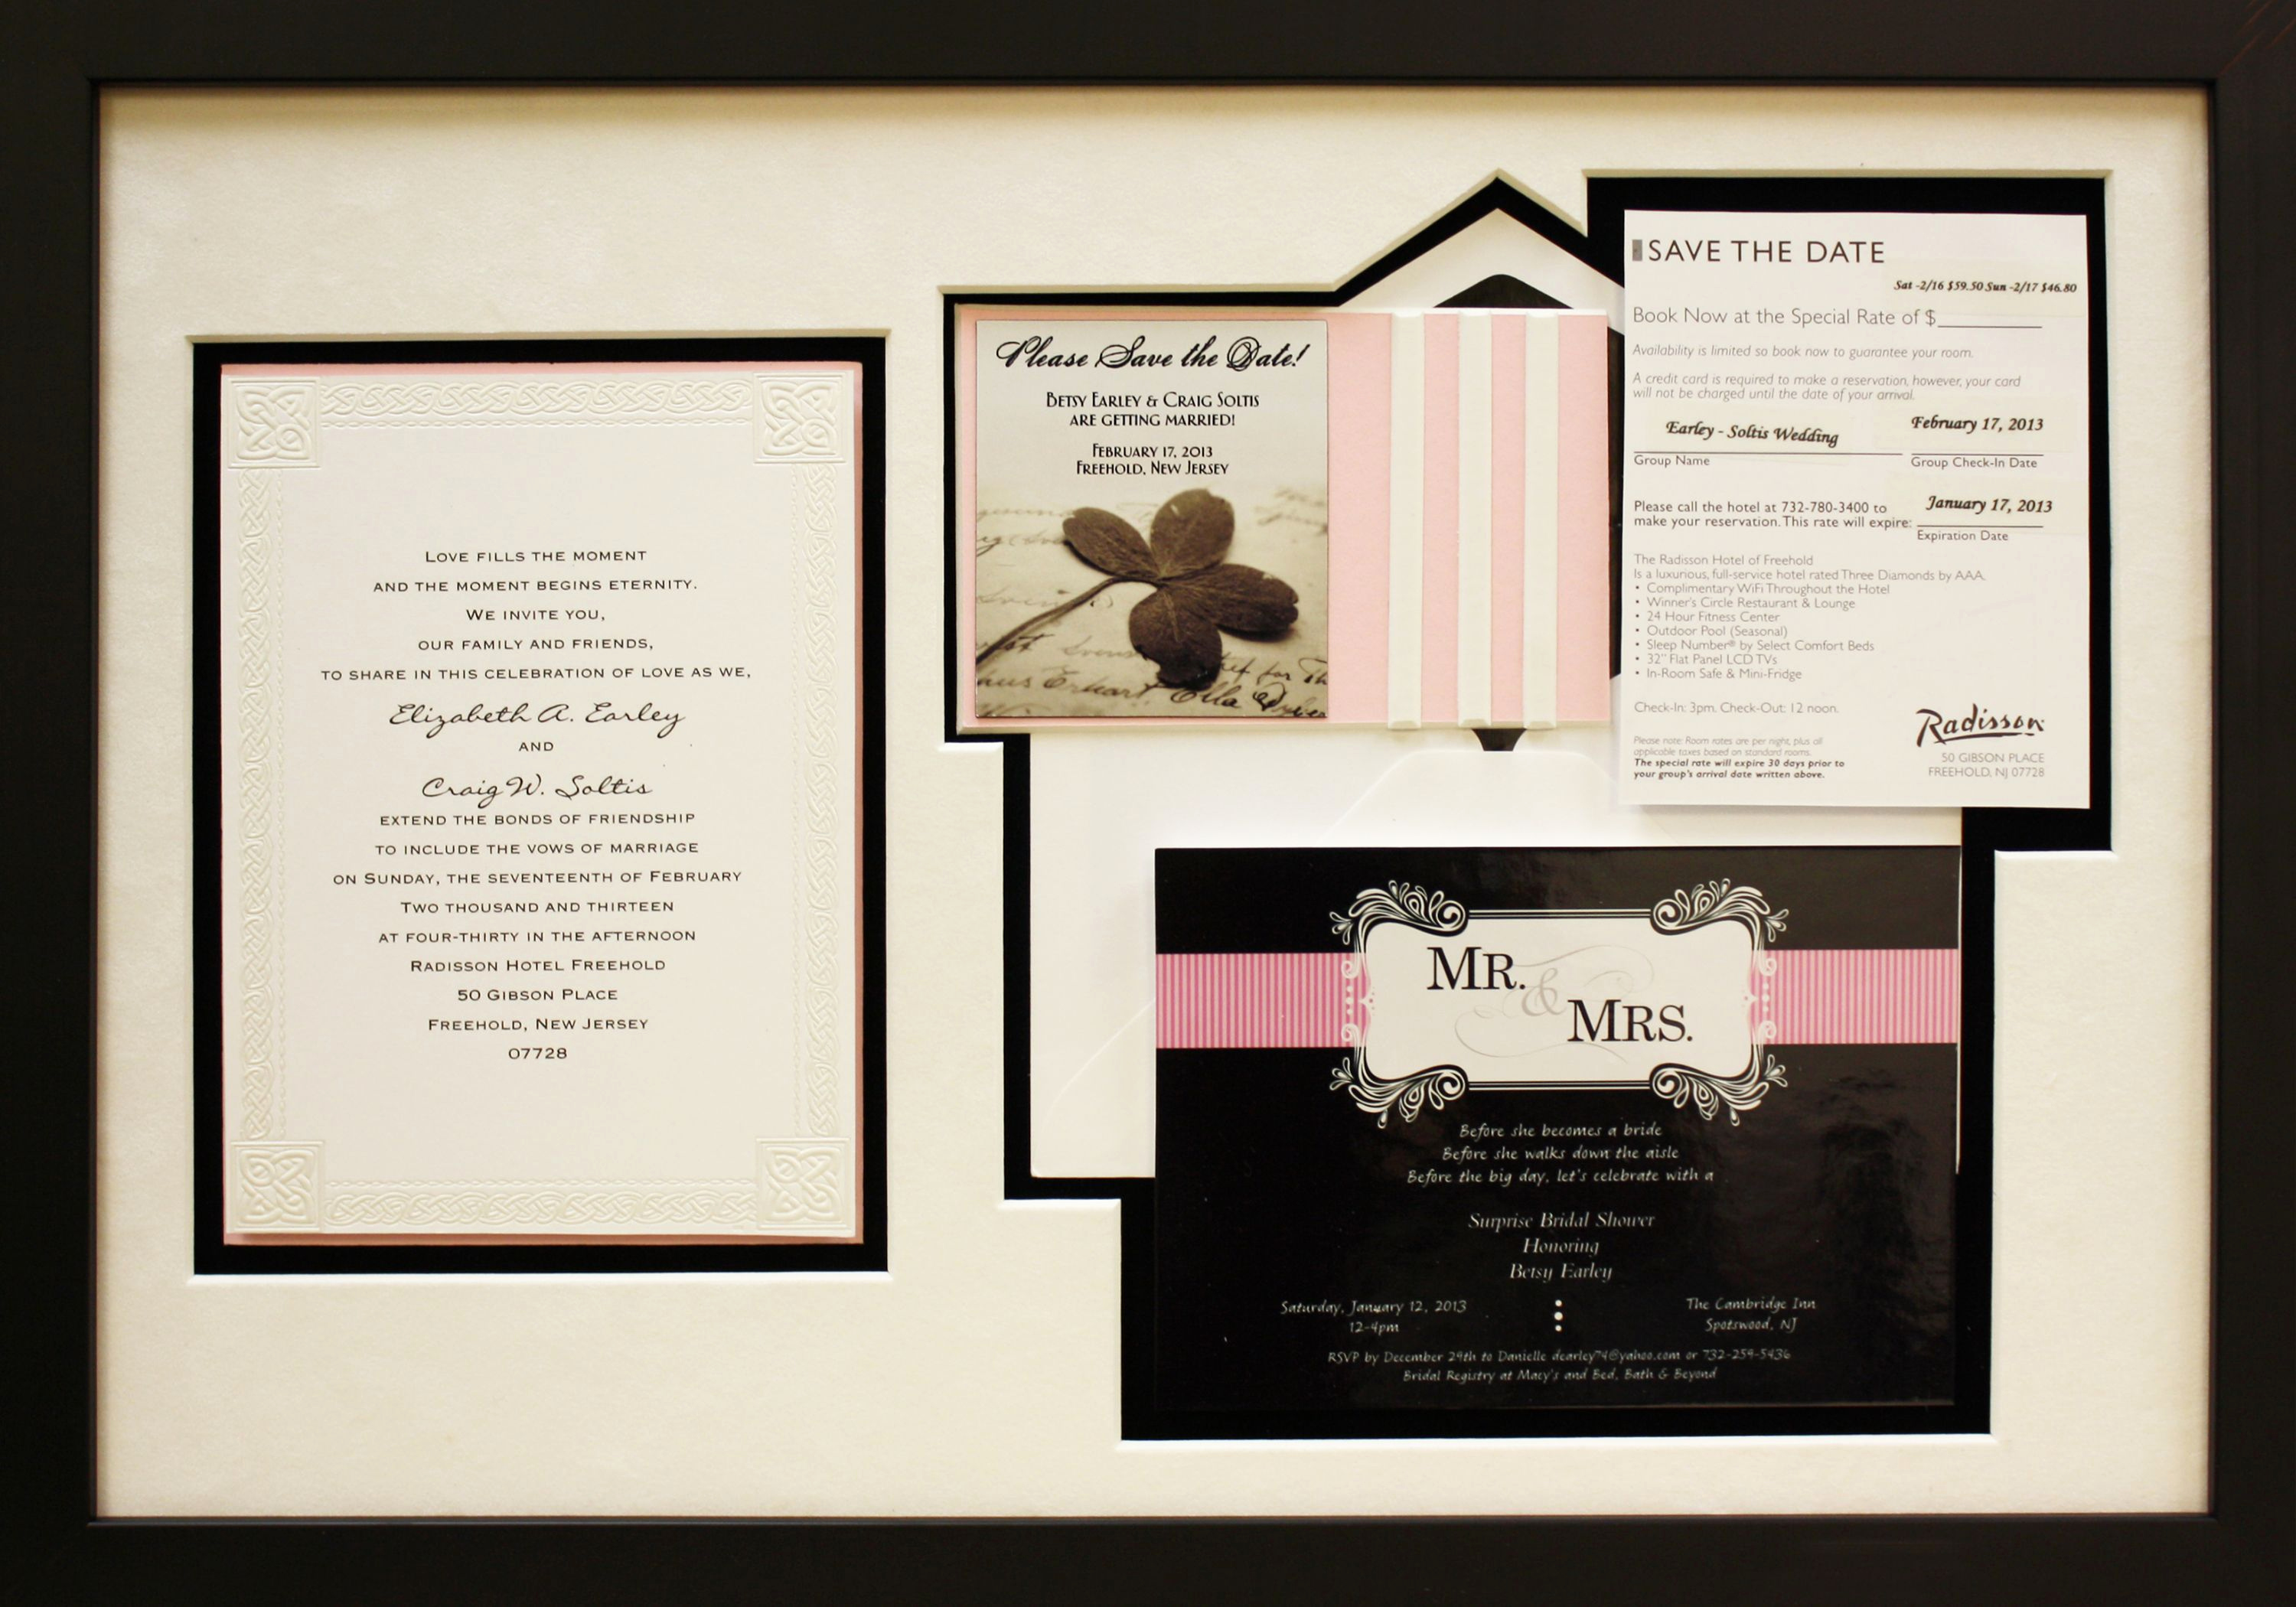 Wedding Invitation Framing Ideas Beautiful Wedding Invitation Framed with A Custom Mat Board to